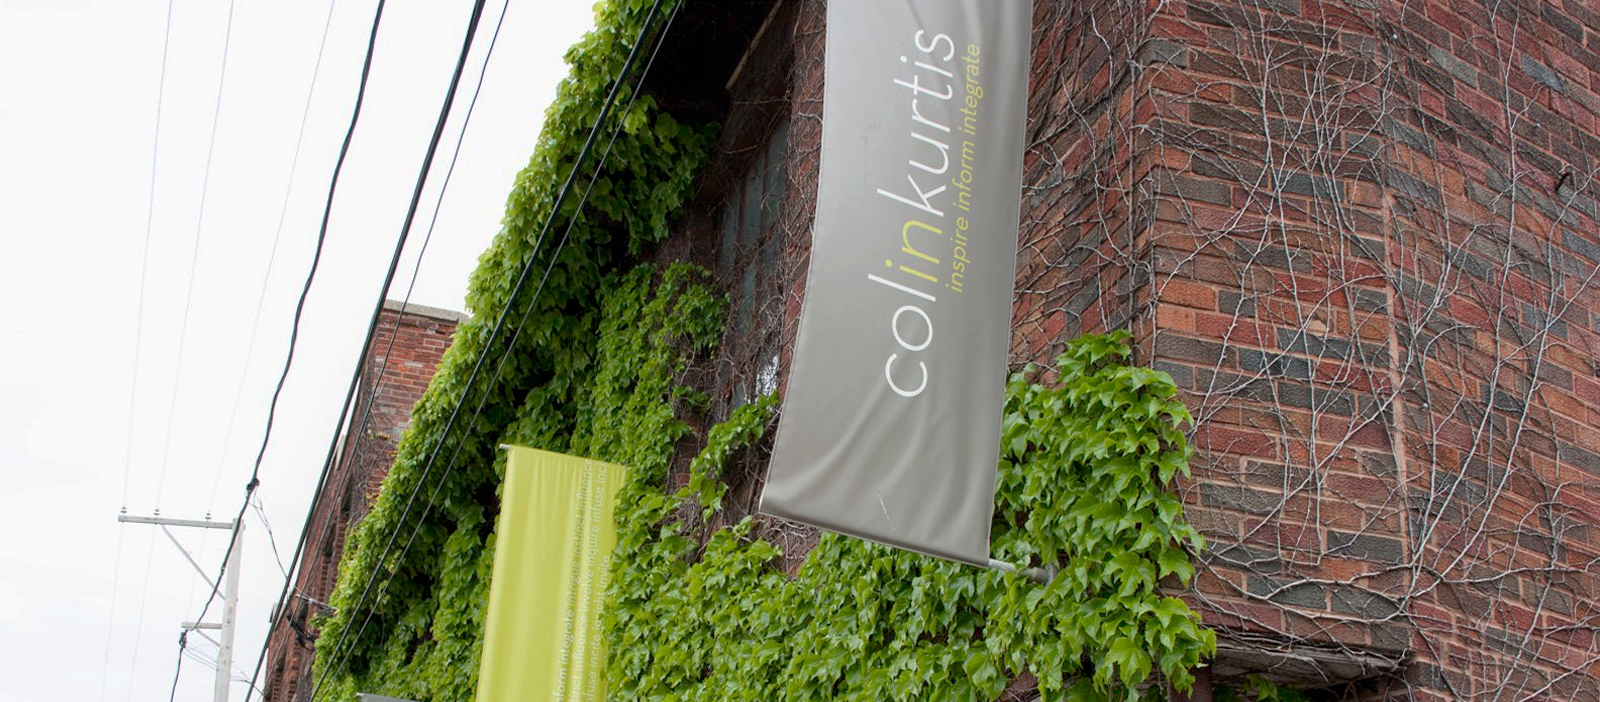 Brick office building with ColinKurtis banner